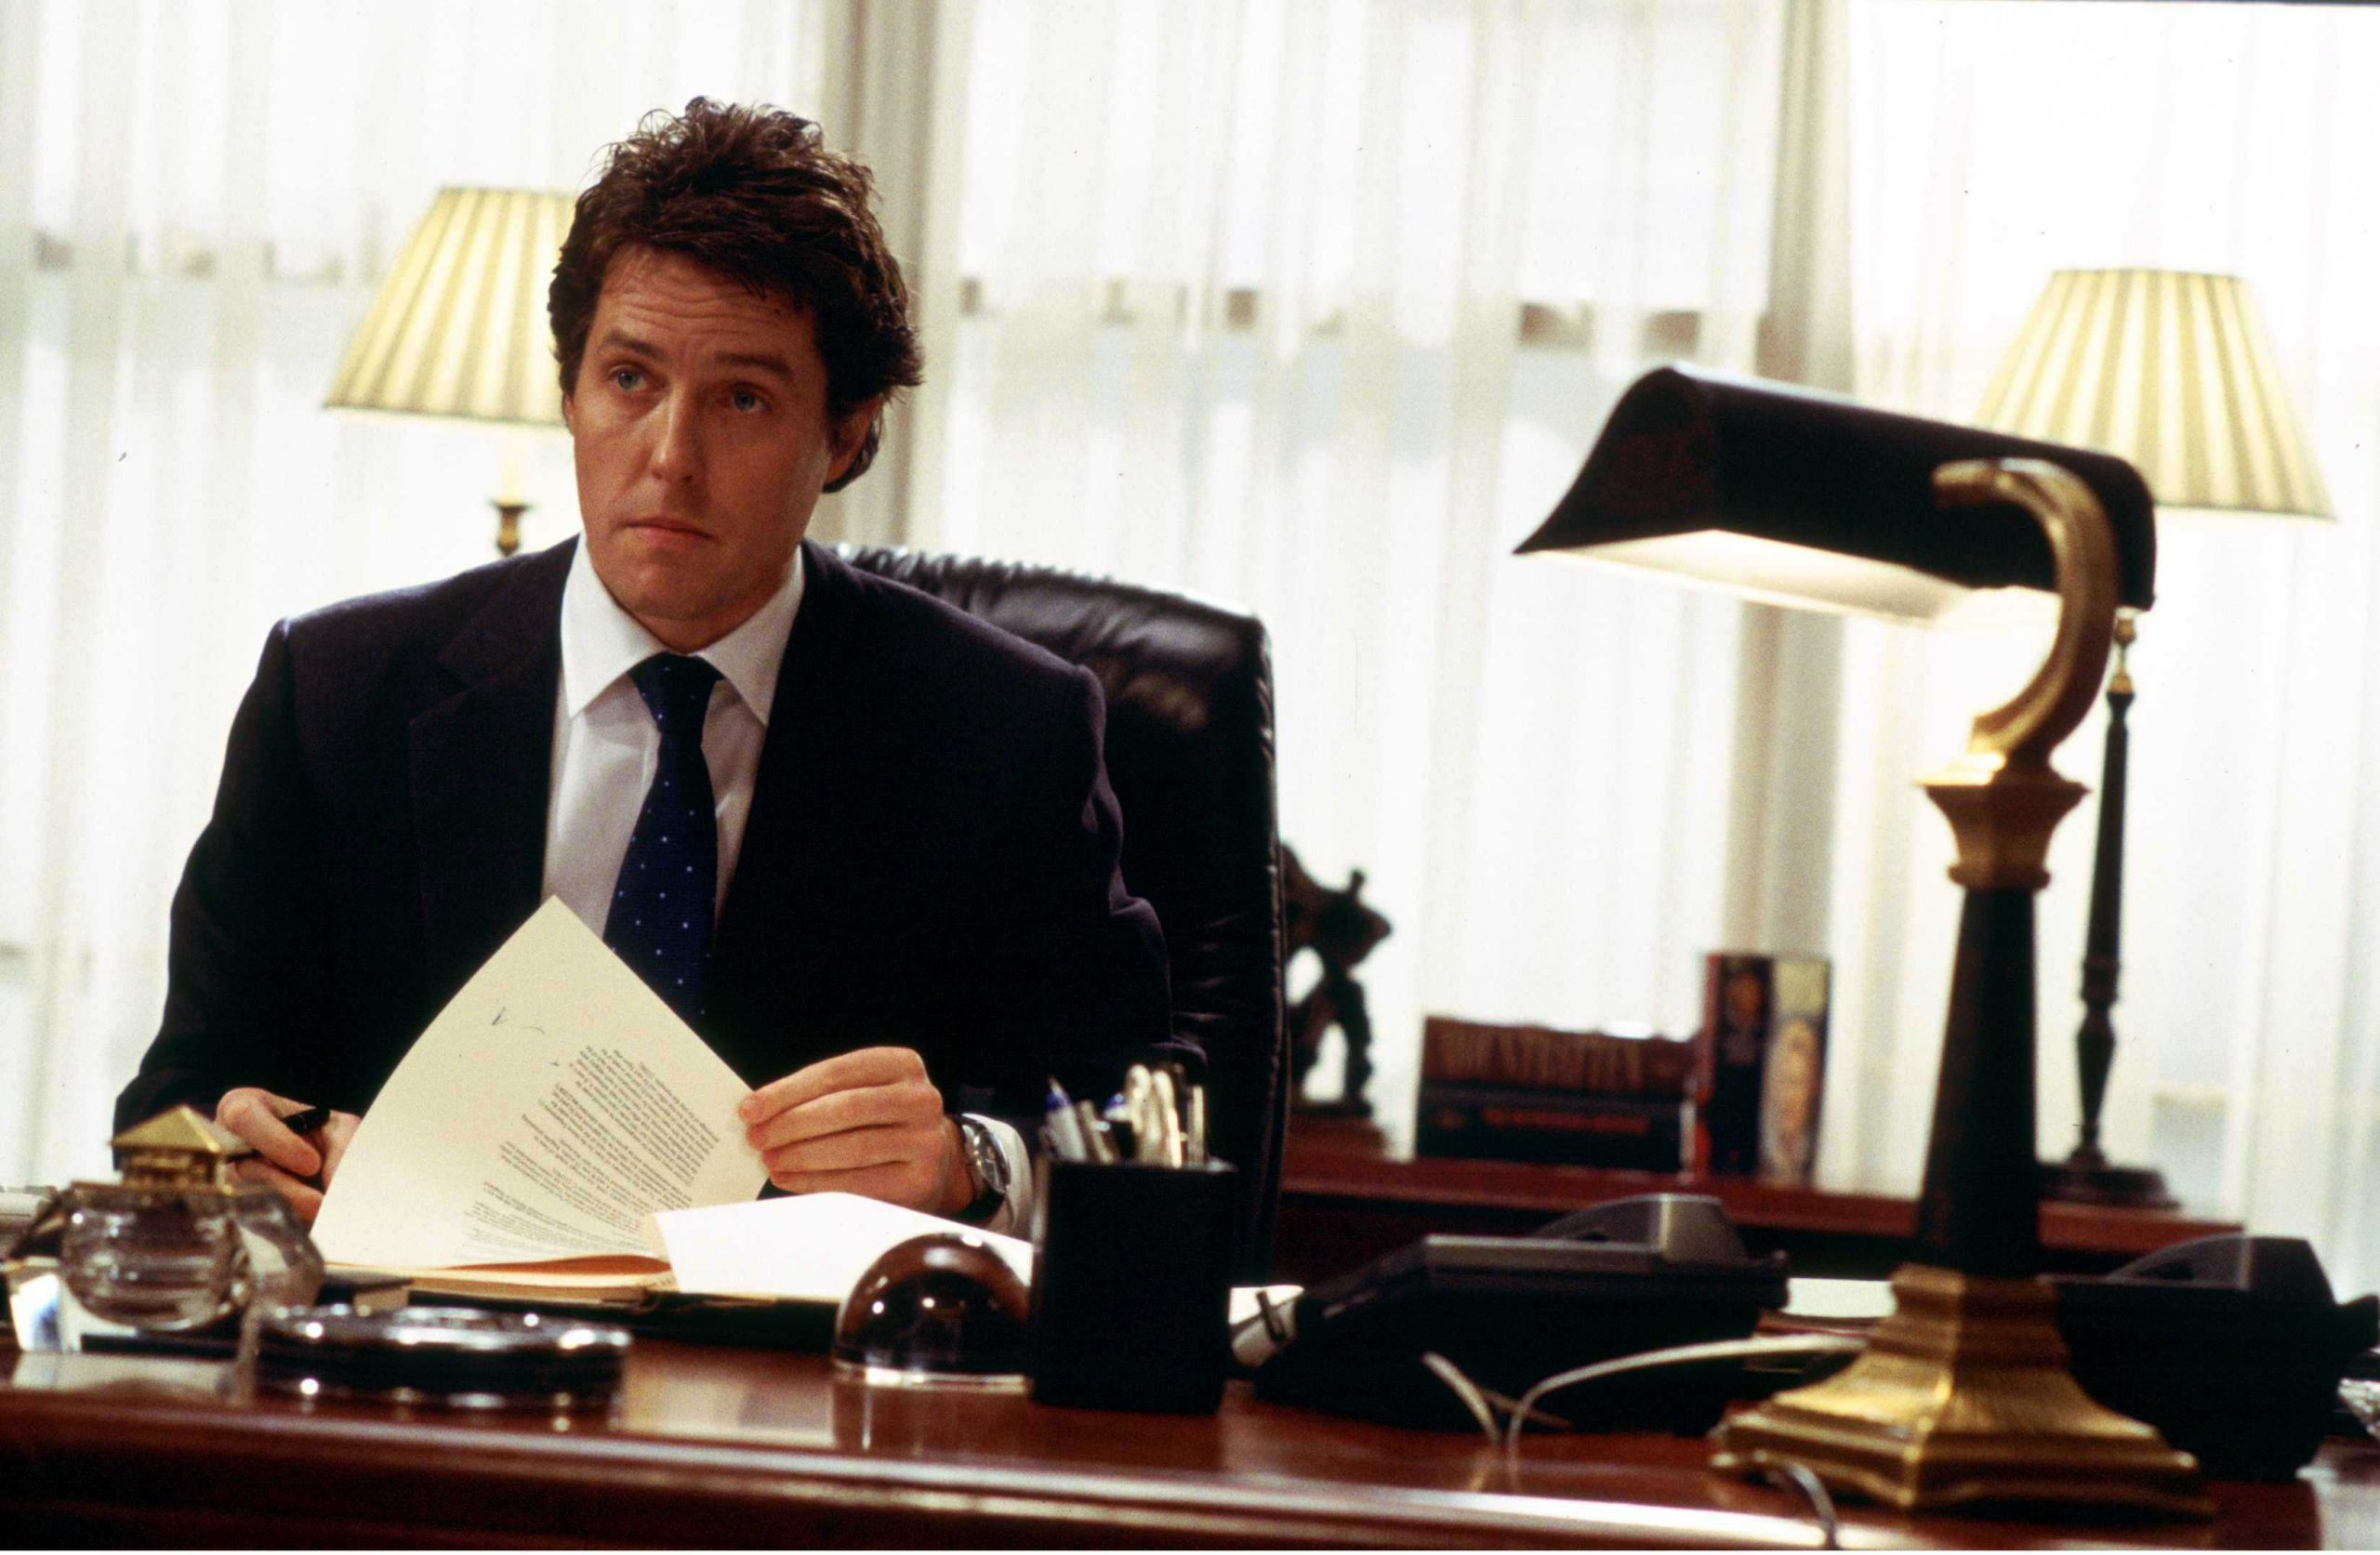 An image from Love Actually showing Hugh Grant as prime minister looking baffled